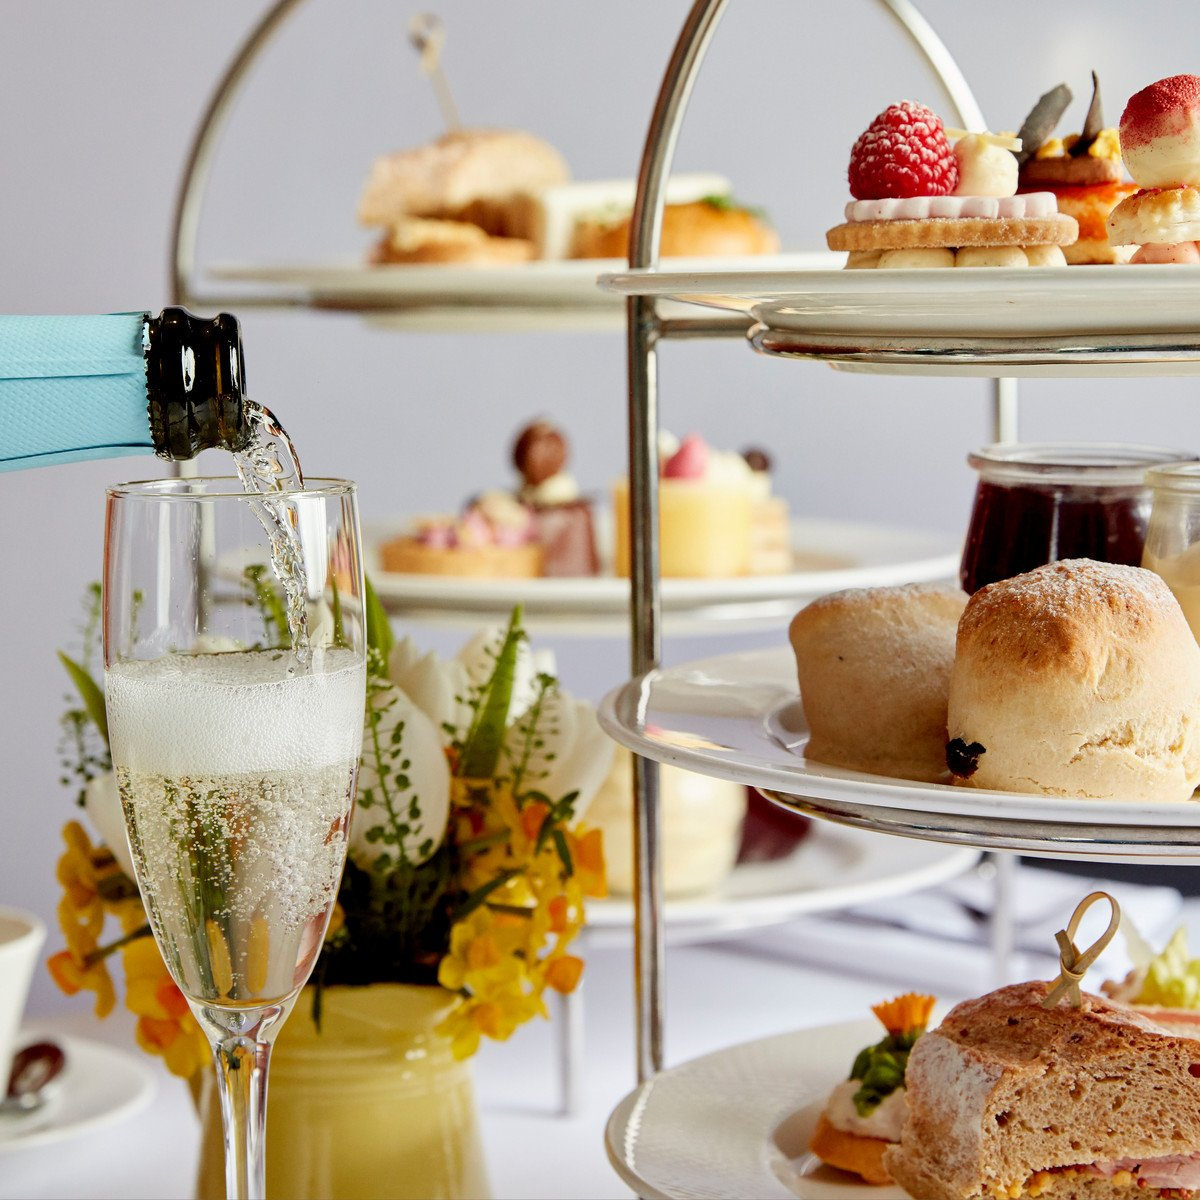 It's here! Afternoon Tea Week has finally arrived and runs 12th - 18th August ☕🍰💕 To celebrate we are offering 20% off all of our Afternoon Tea Gift Experiences for this week only! Enter TEA20 at the checkout to get 20% off! https://celtic-manor.enjovia.com/afternoon-tea